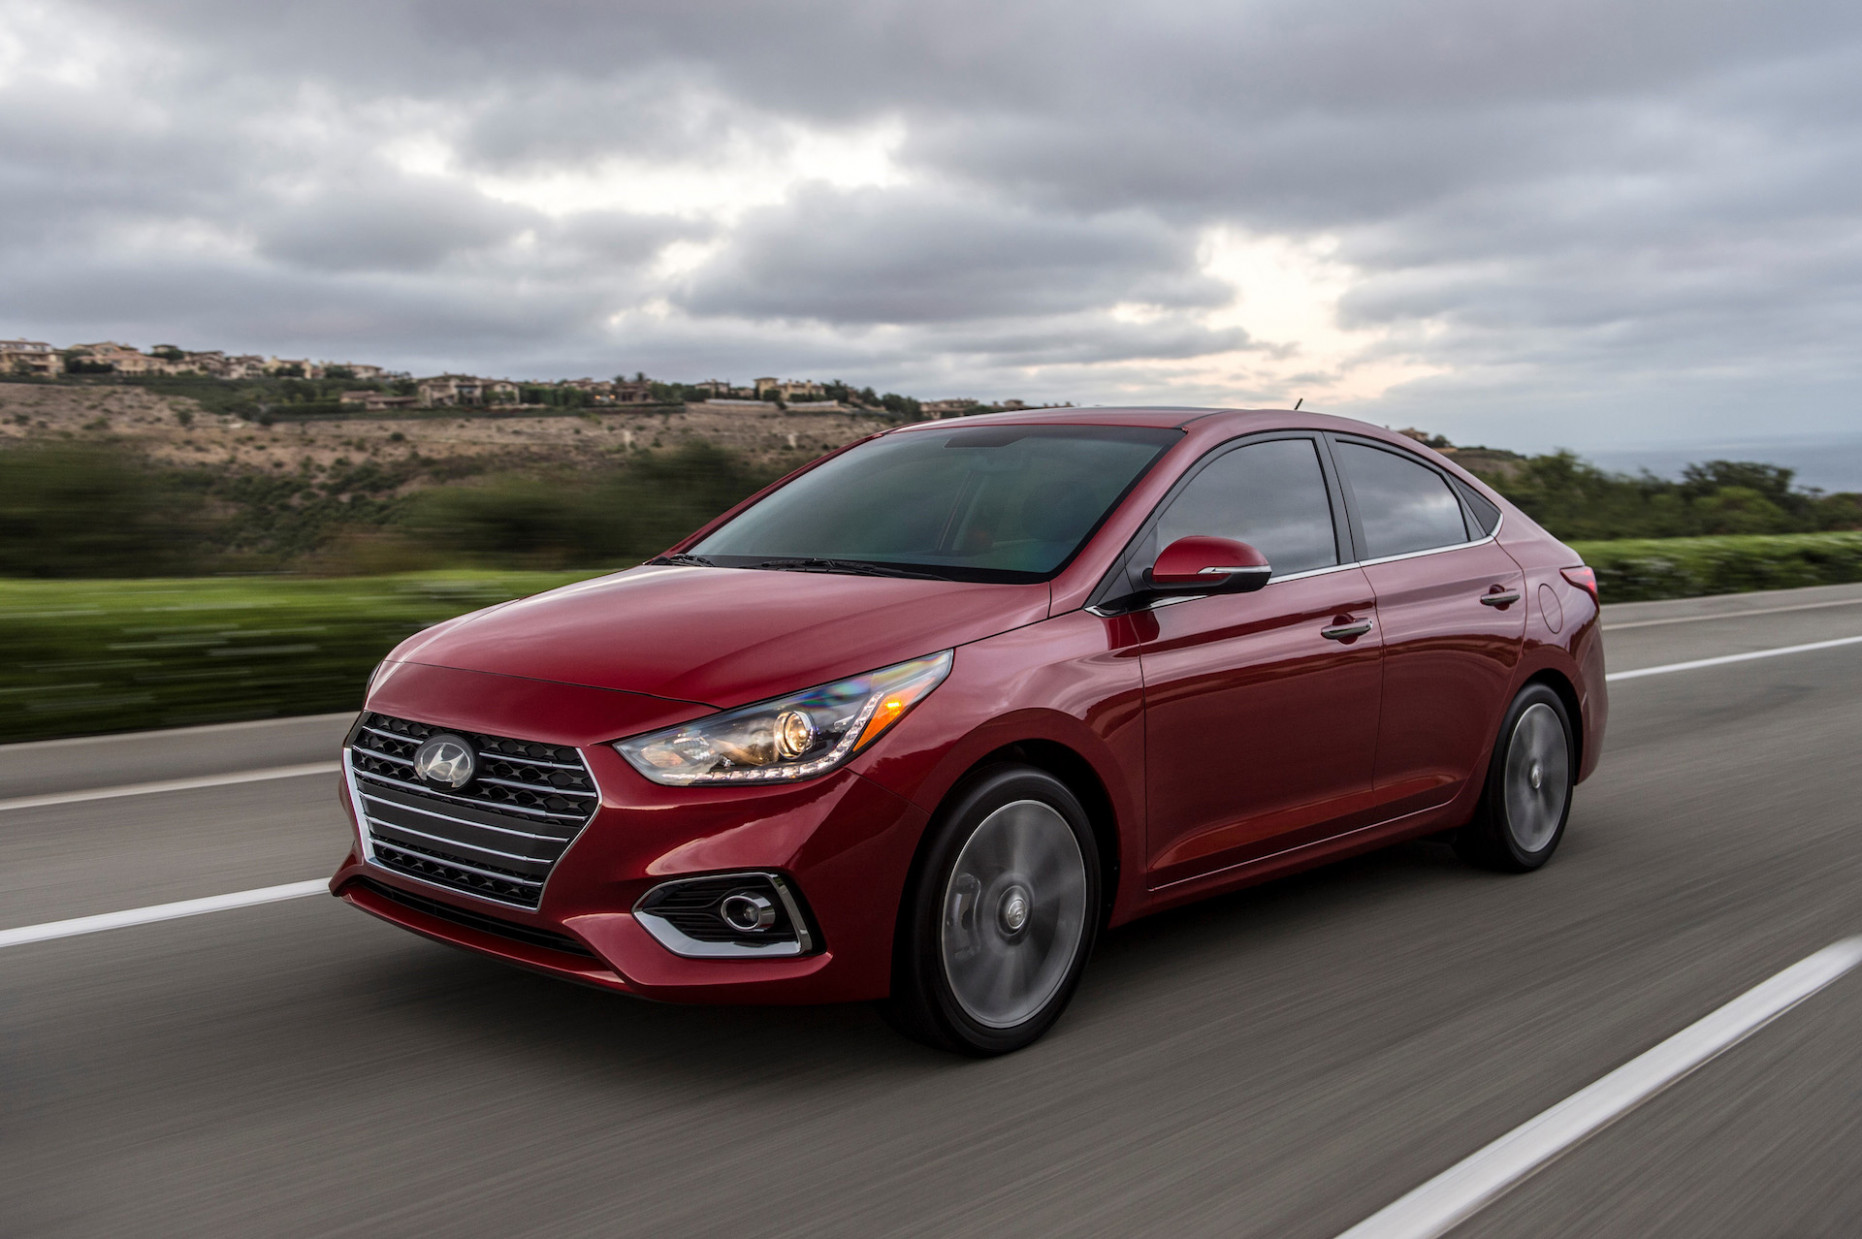 8 Hyundai Accent Review, Ratings, Specs, Prices, and Photos ..